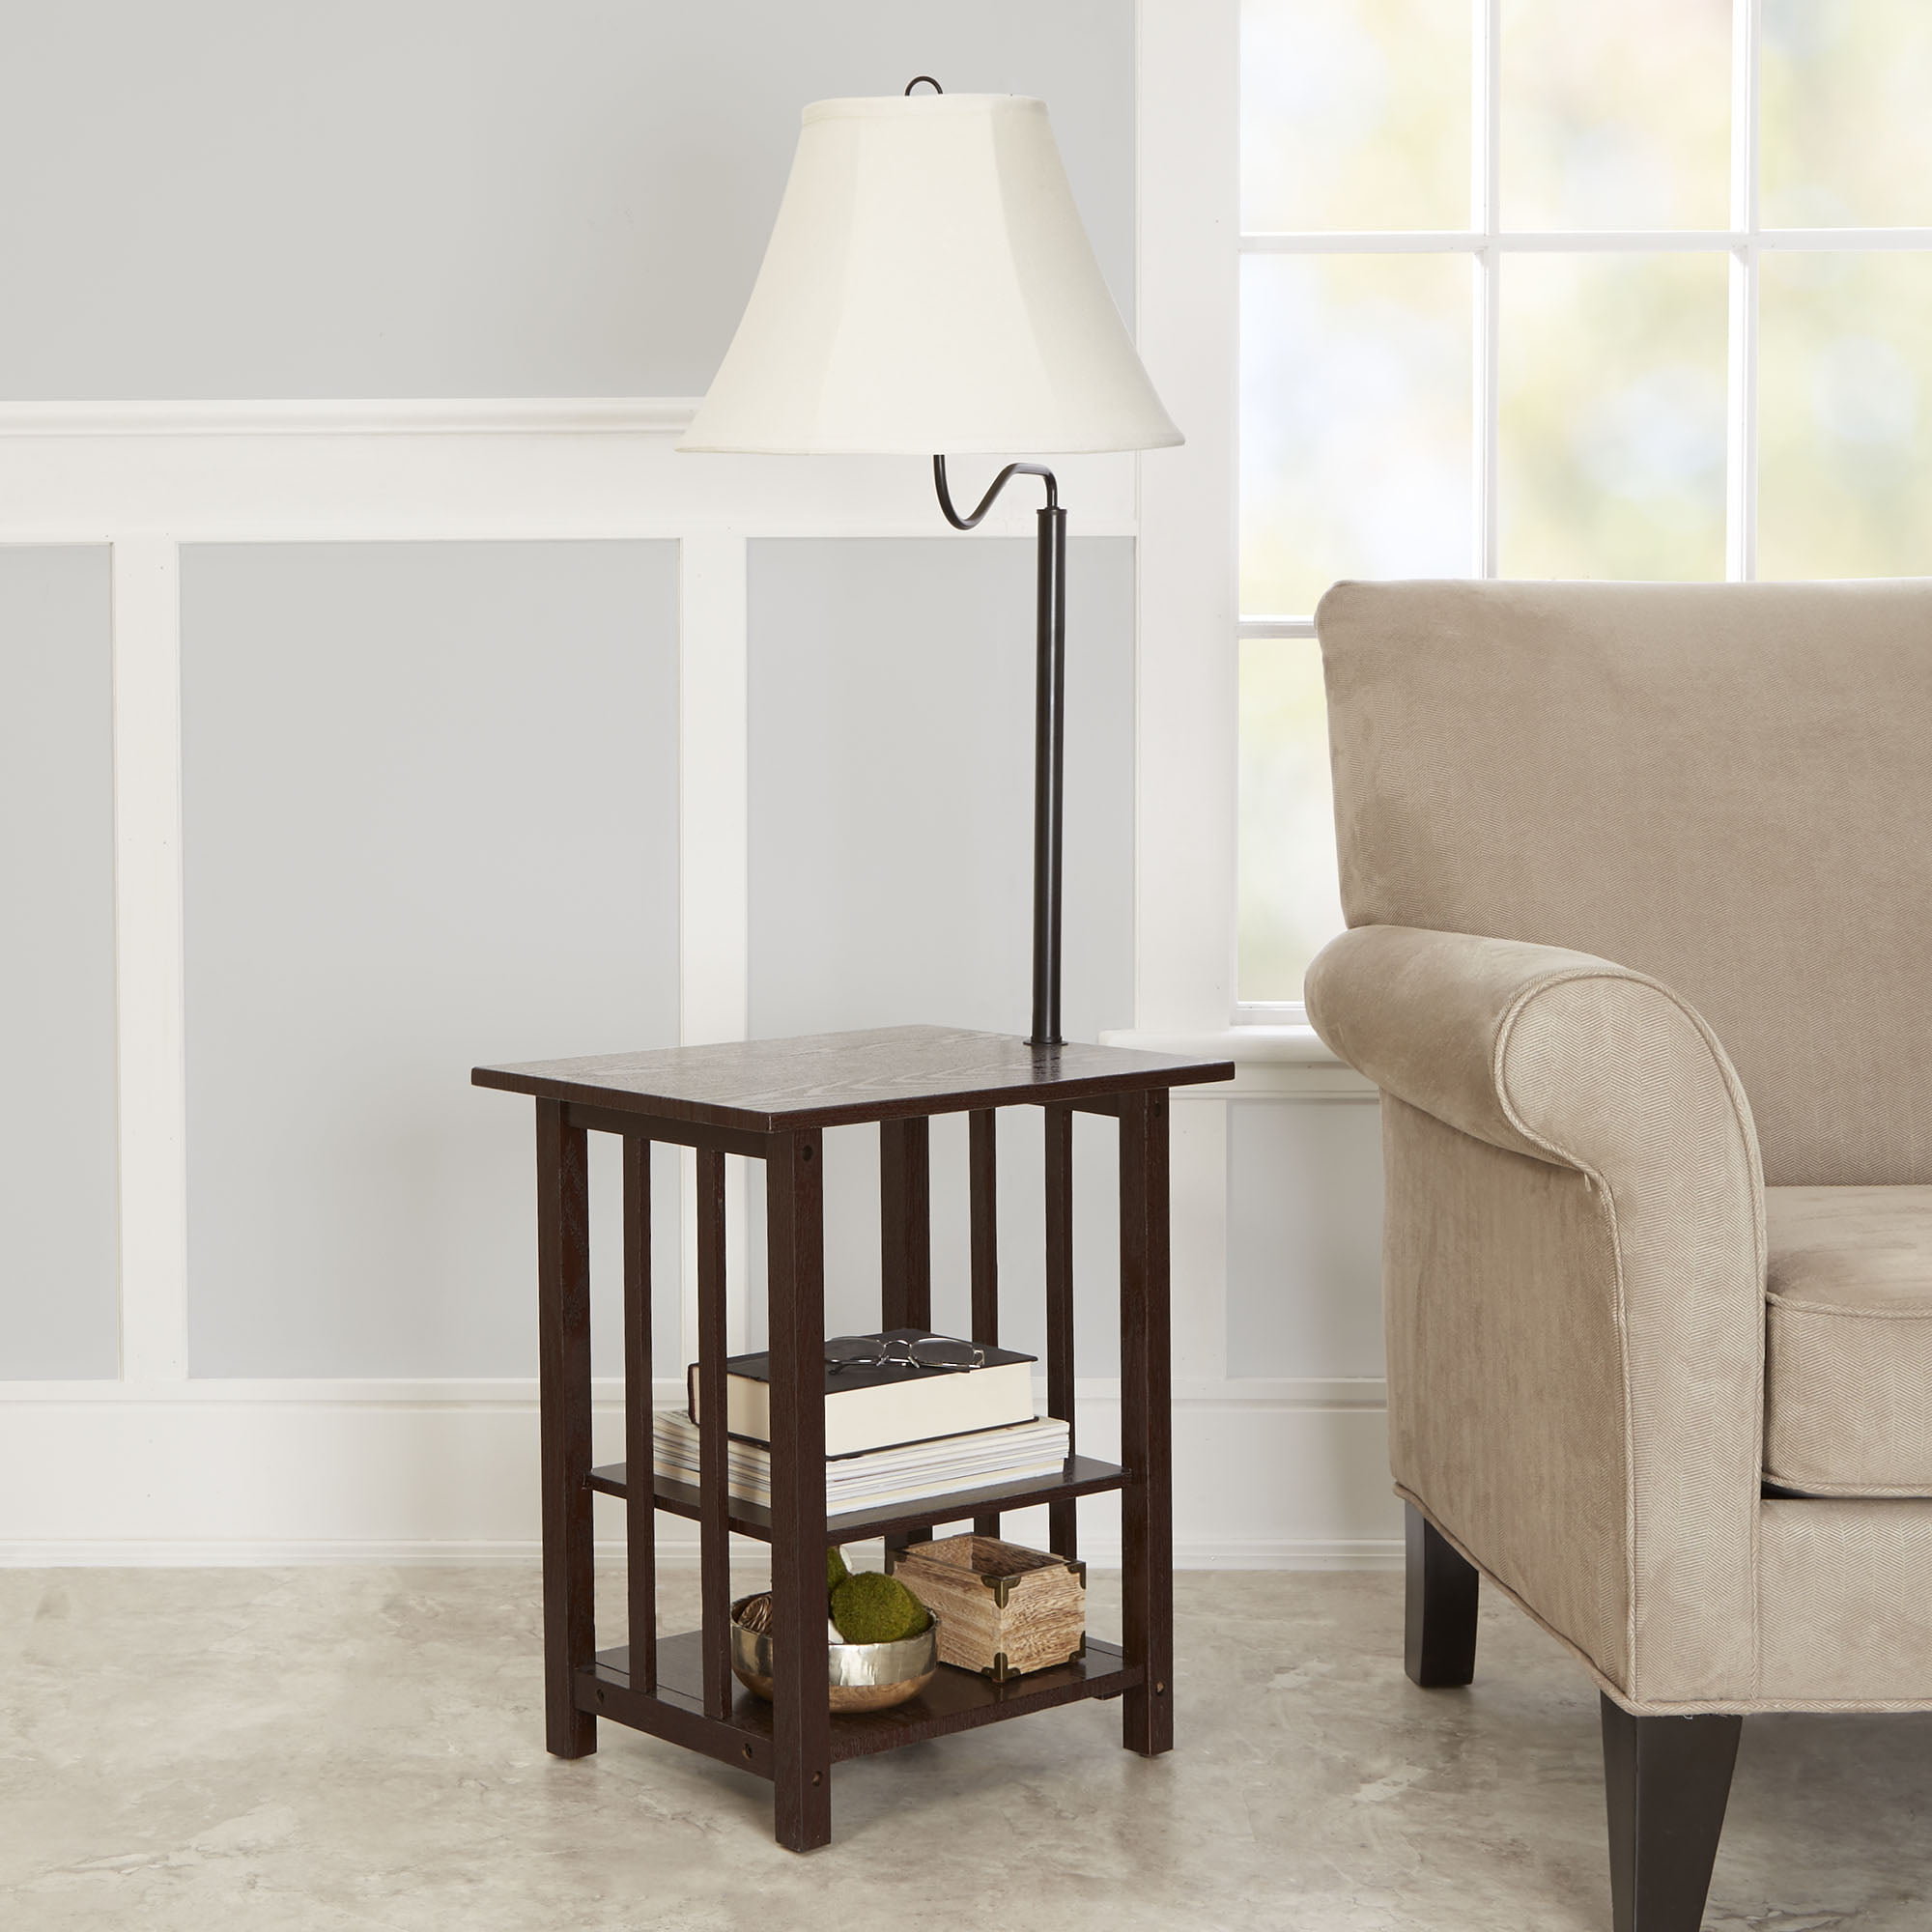 Better Homes U0026 Gardens 3 Rack End Table Floor Lamp, Espresso Finish    Walmart.com